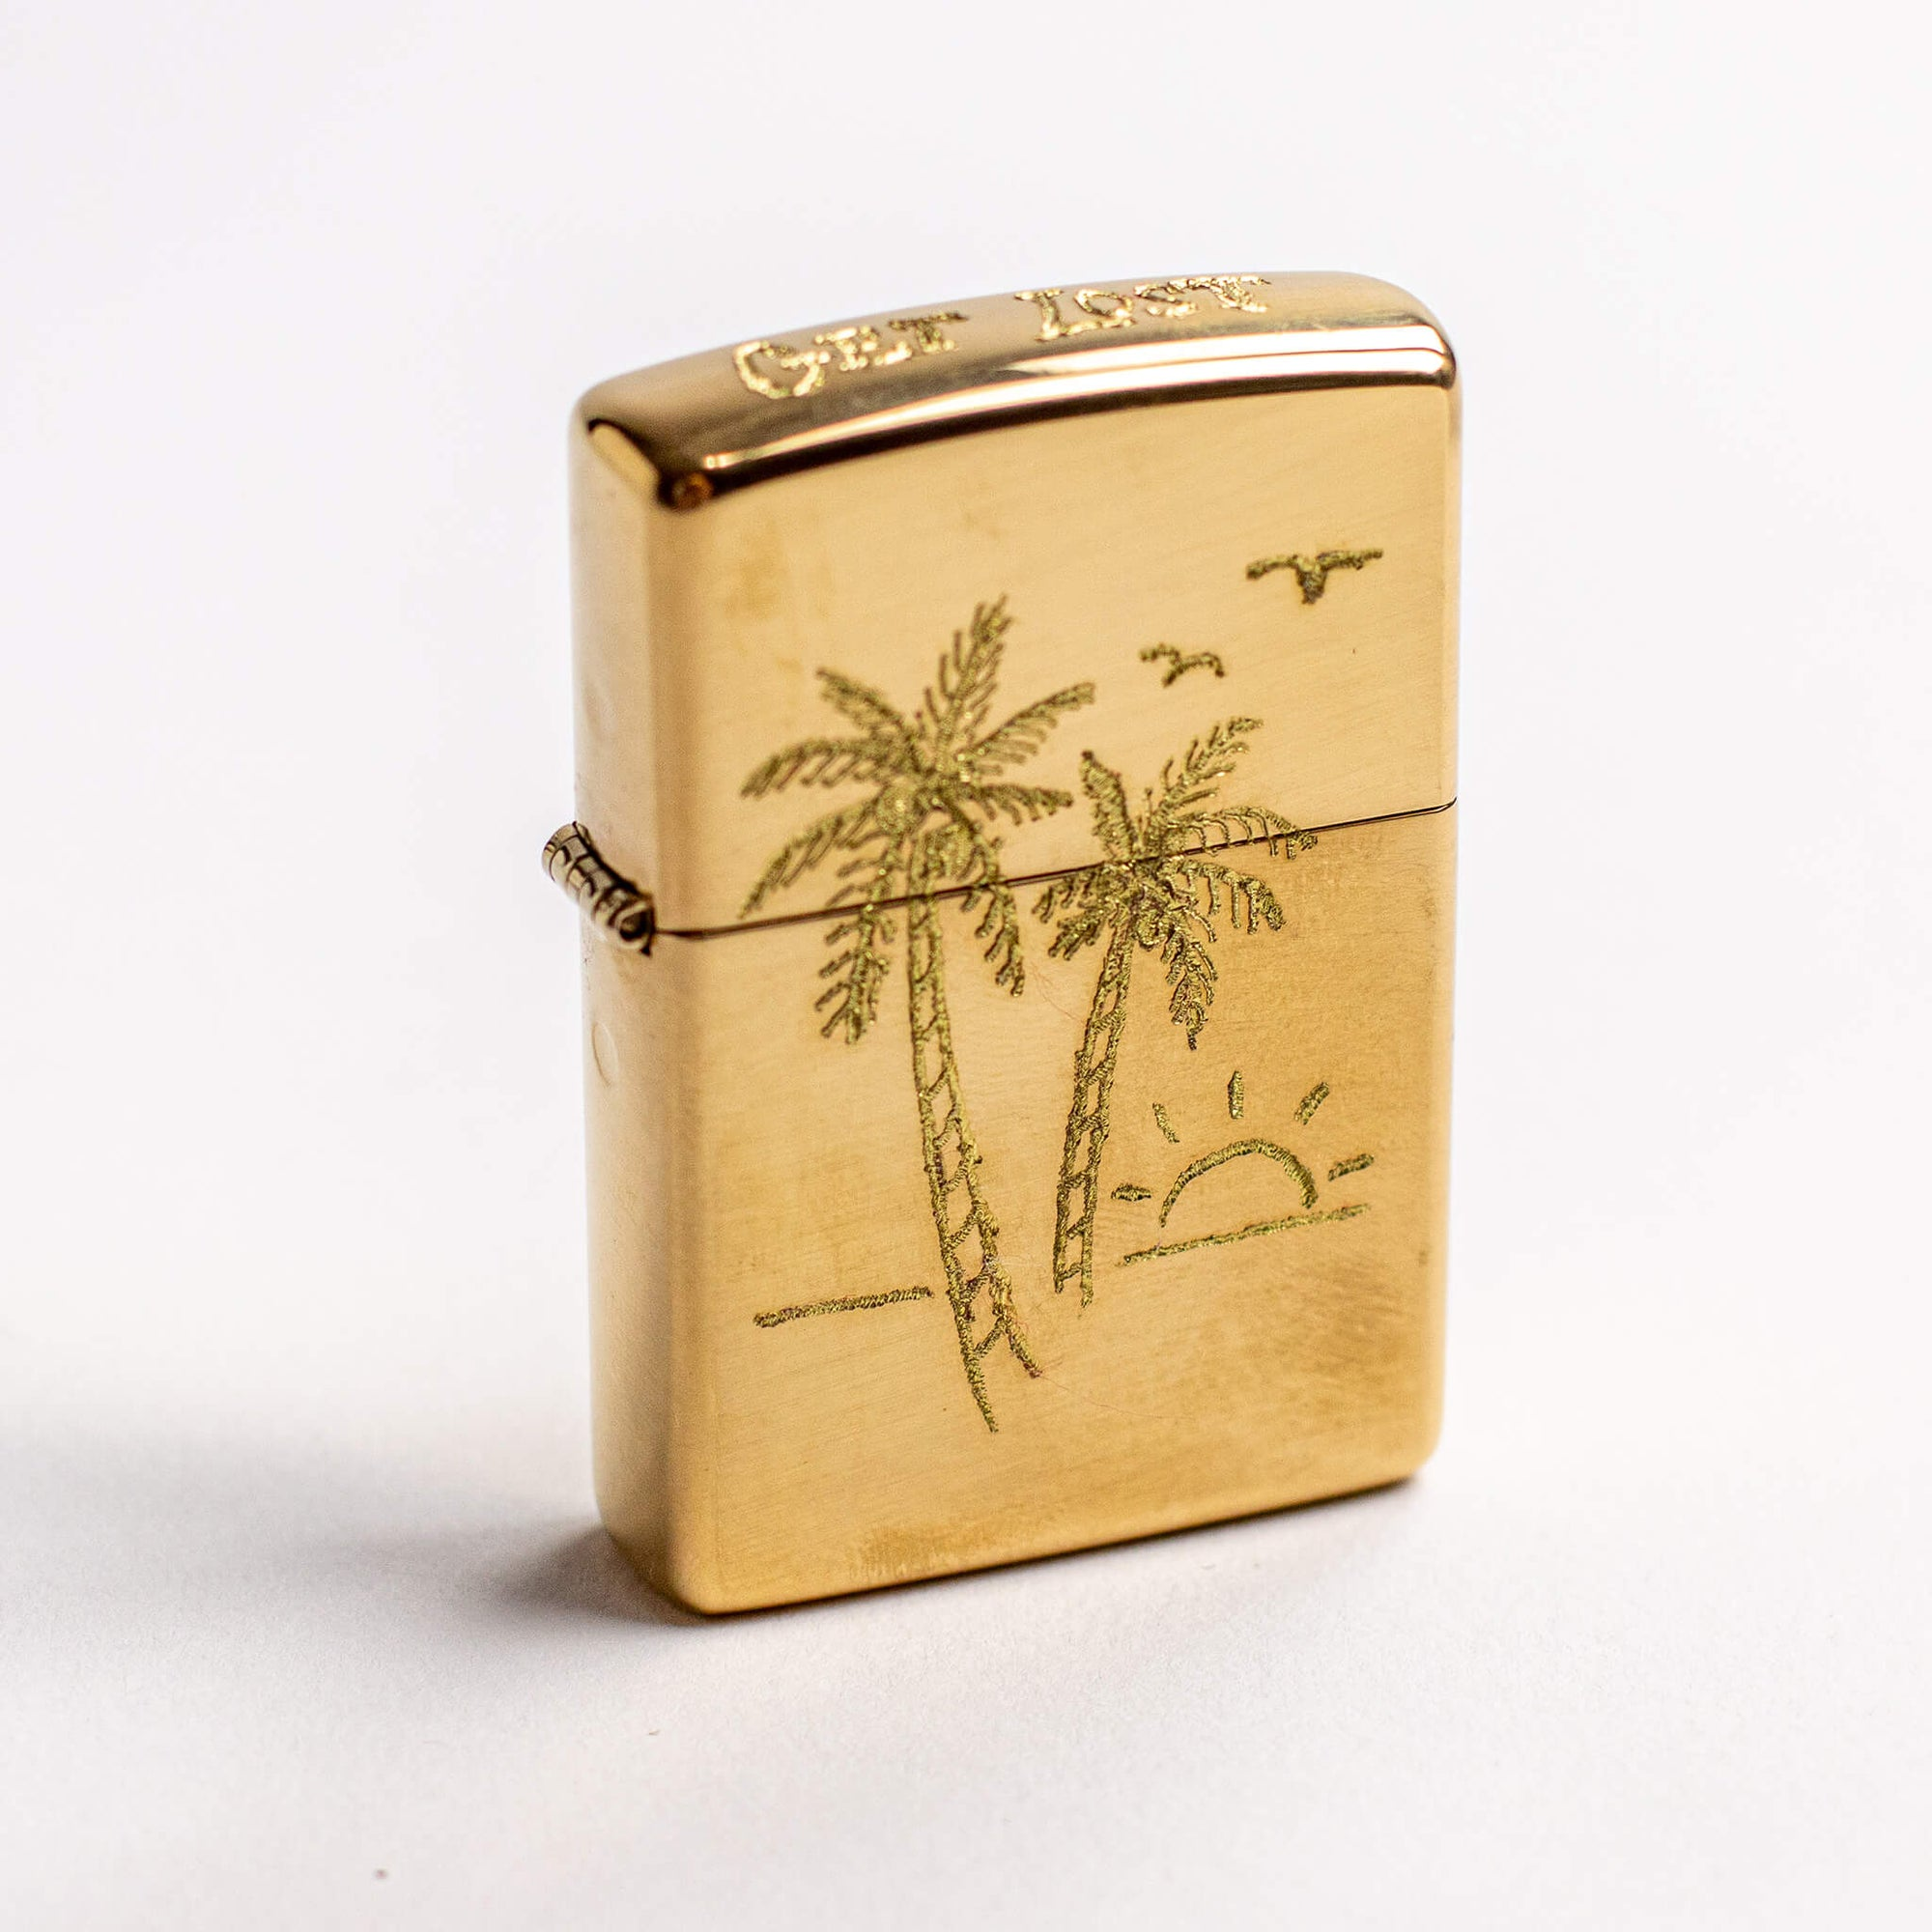 Get Lost Engraved Zippo